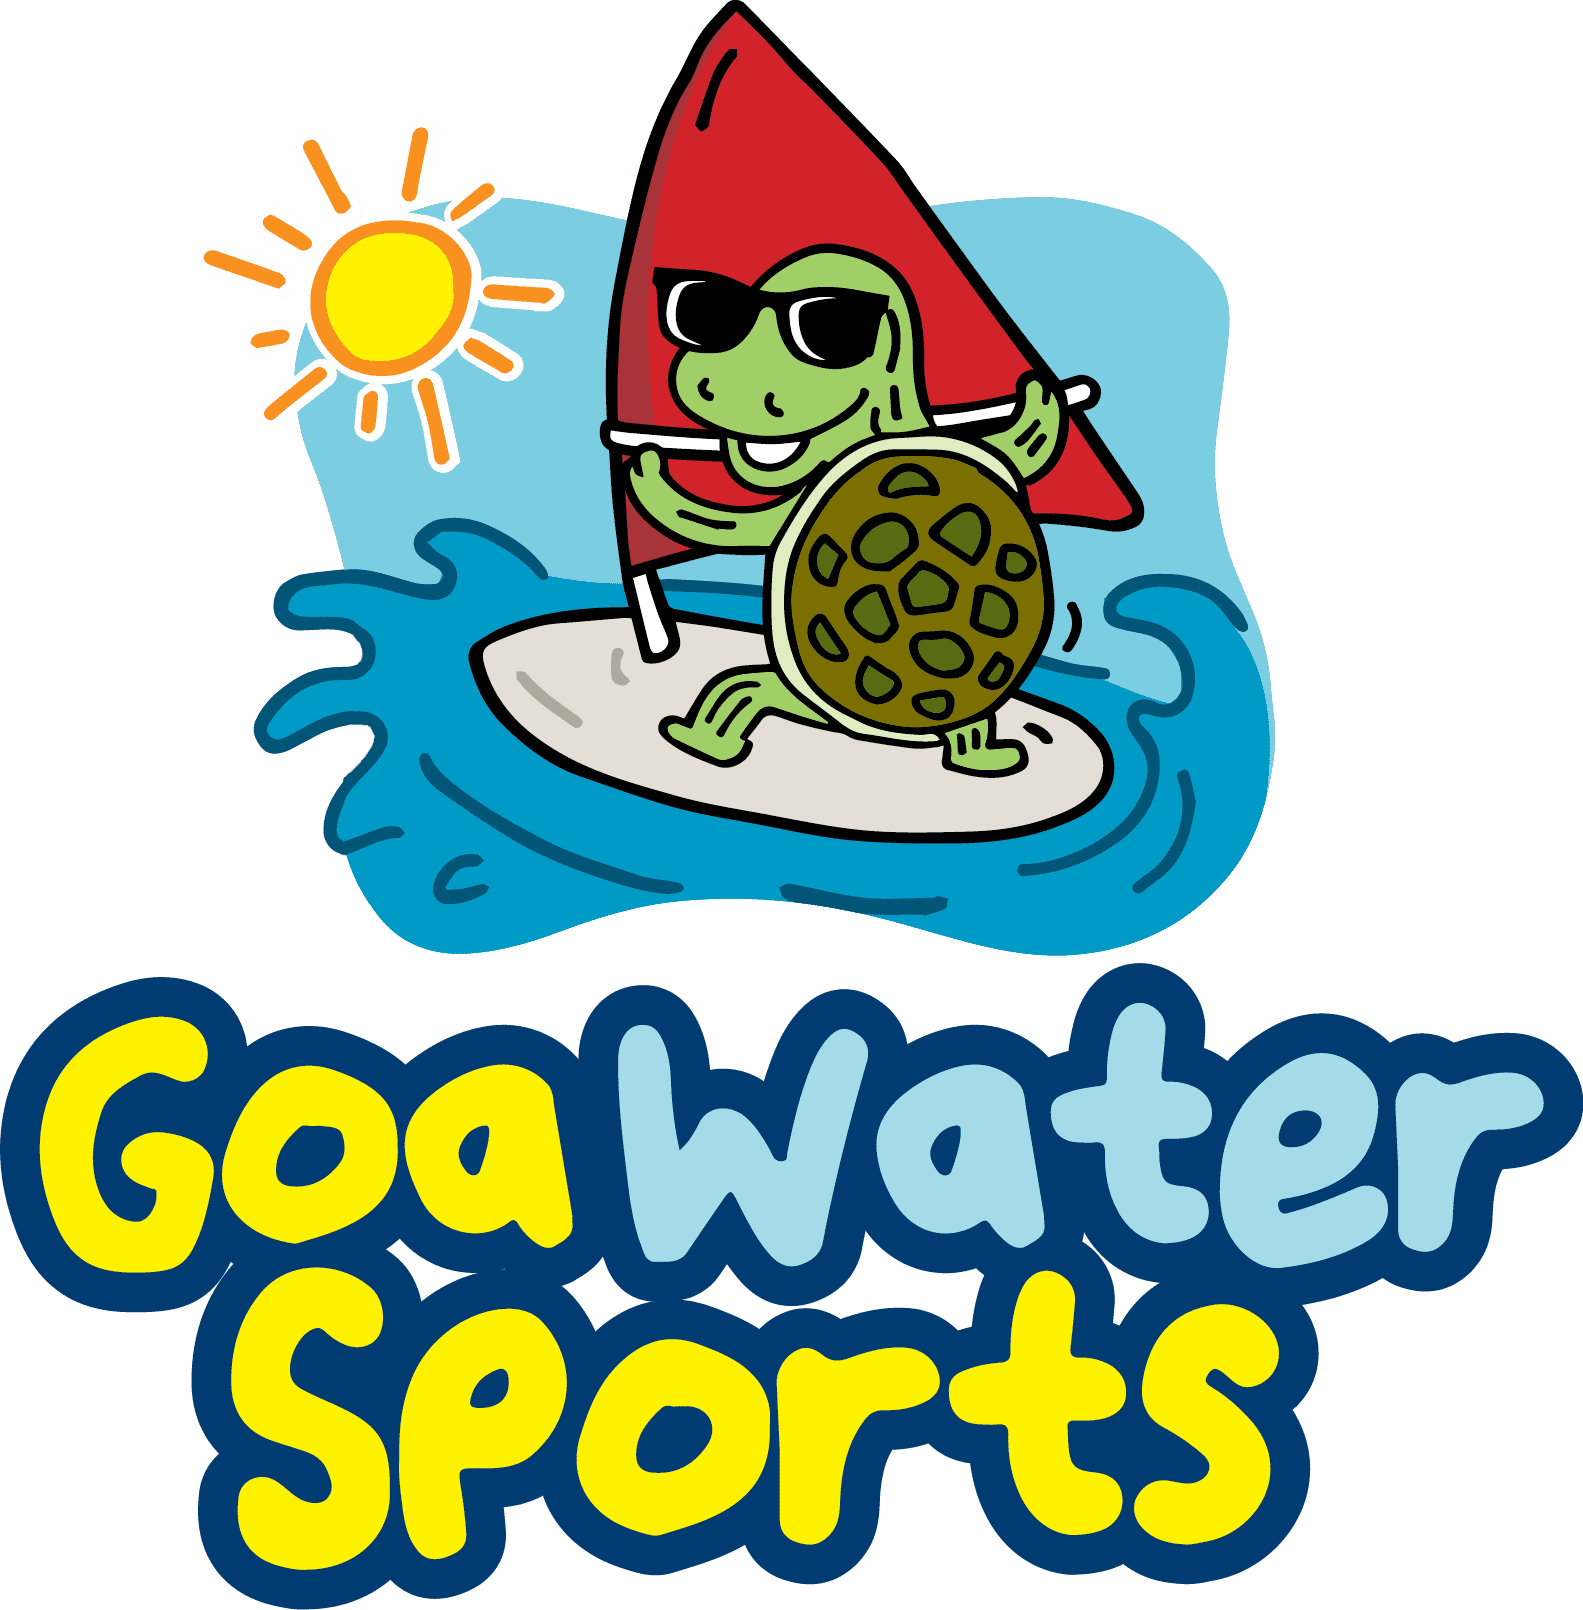 Kayak clipart watersports, Kayak watersports Transparent FREE for download  on WebStockReview 2020